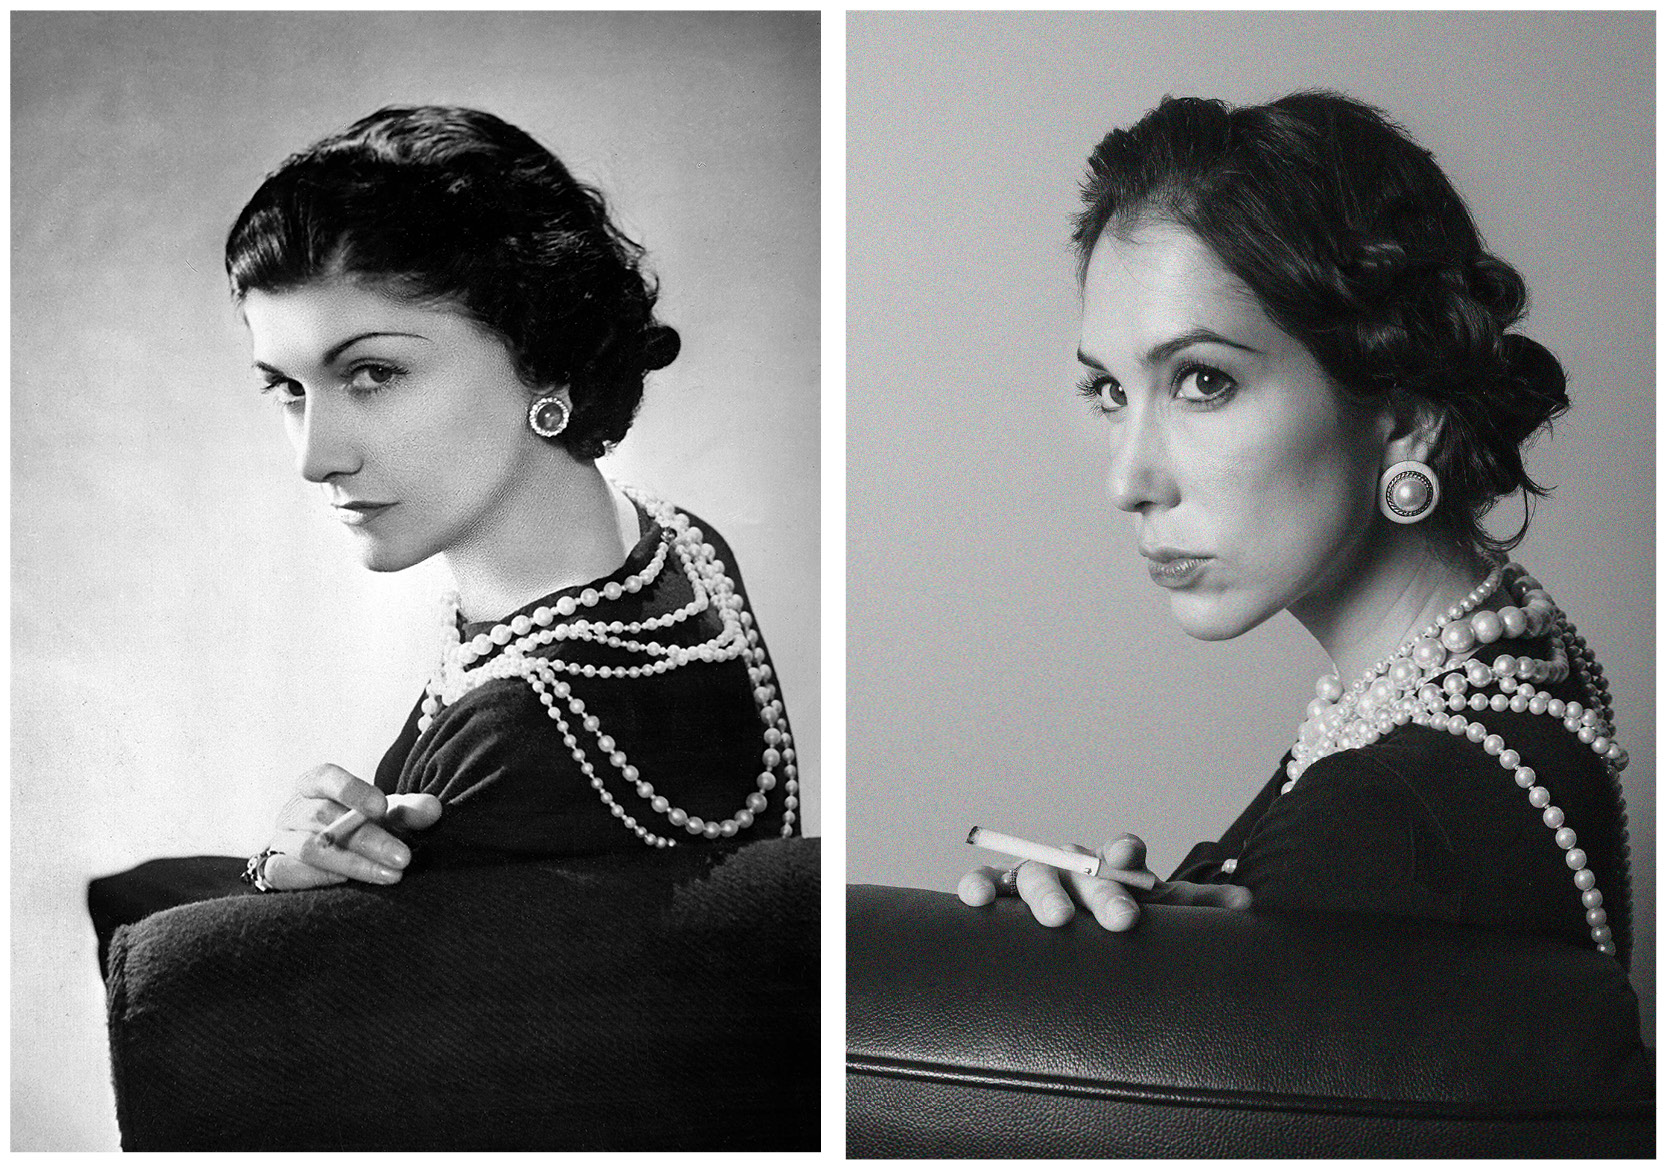 Side by side photo comparison of original and recreated Coco Chanel photograph